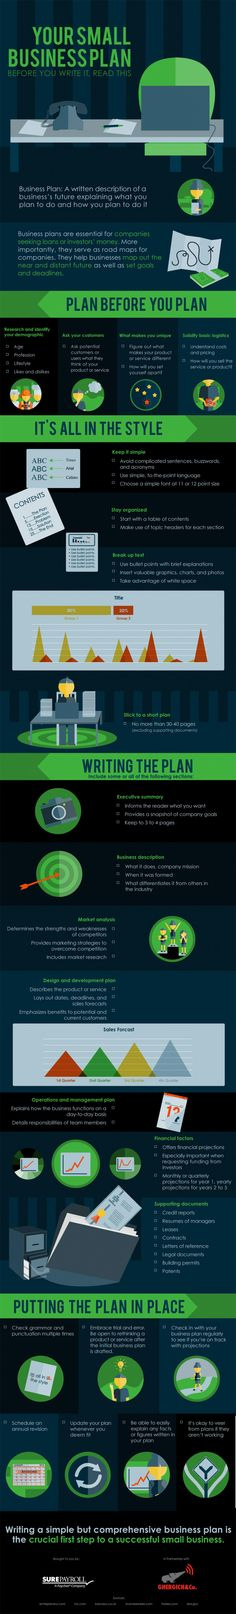 Your Small #BusinessPlan